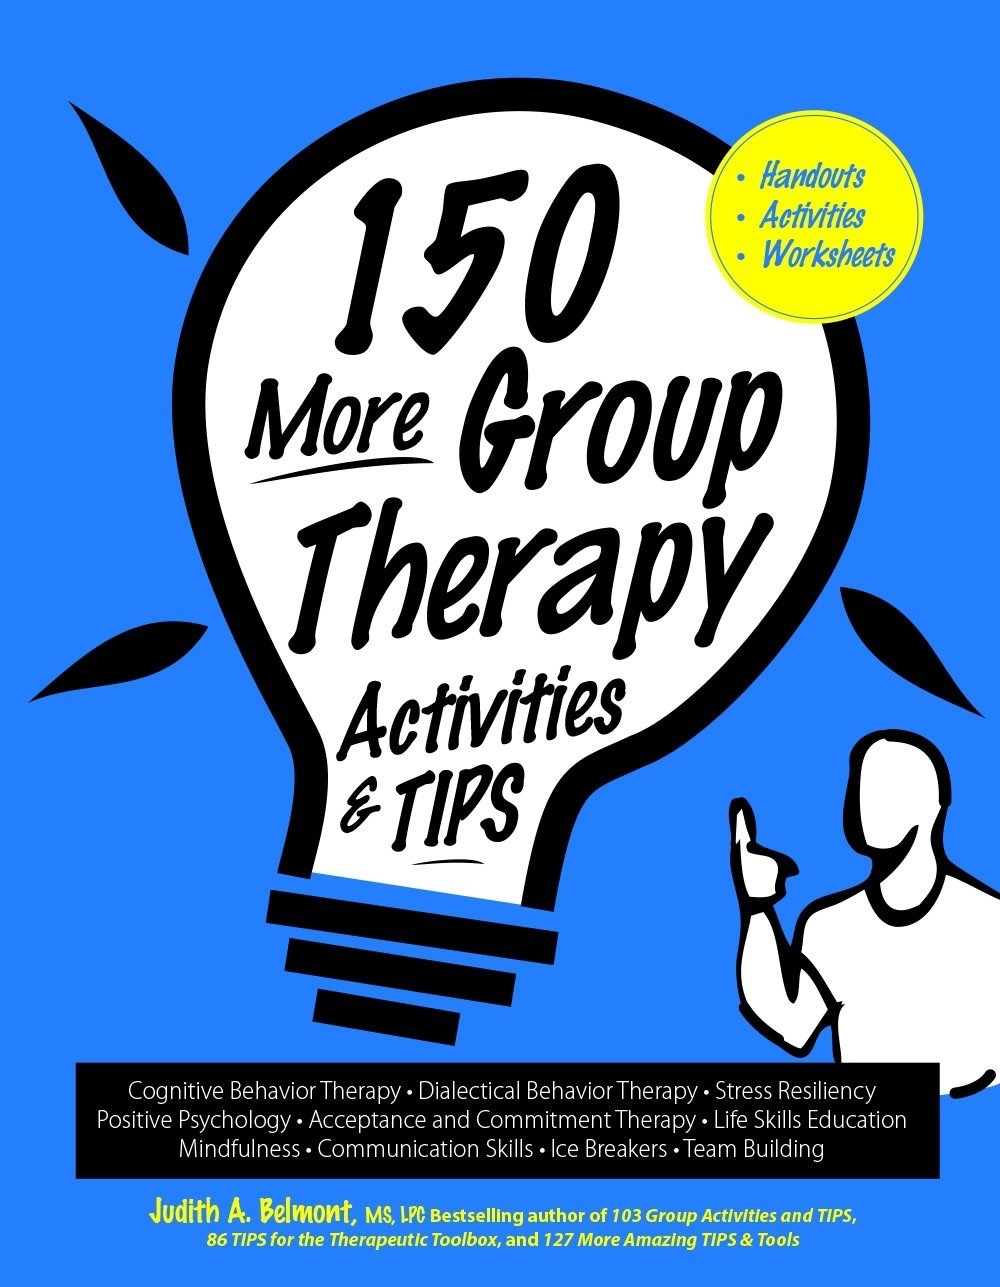 150 More Group Therapy Activities & TIPS 00000